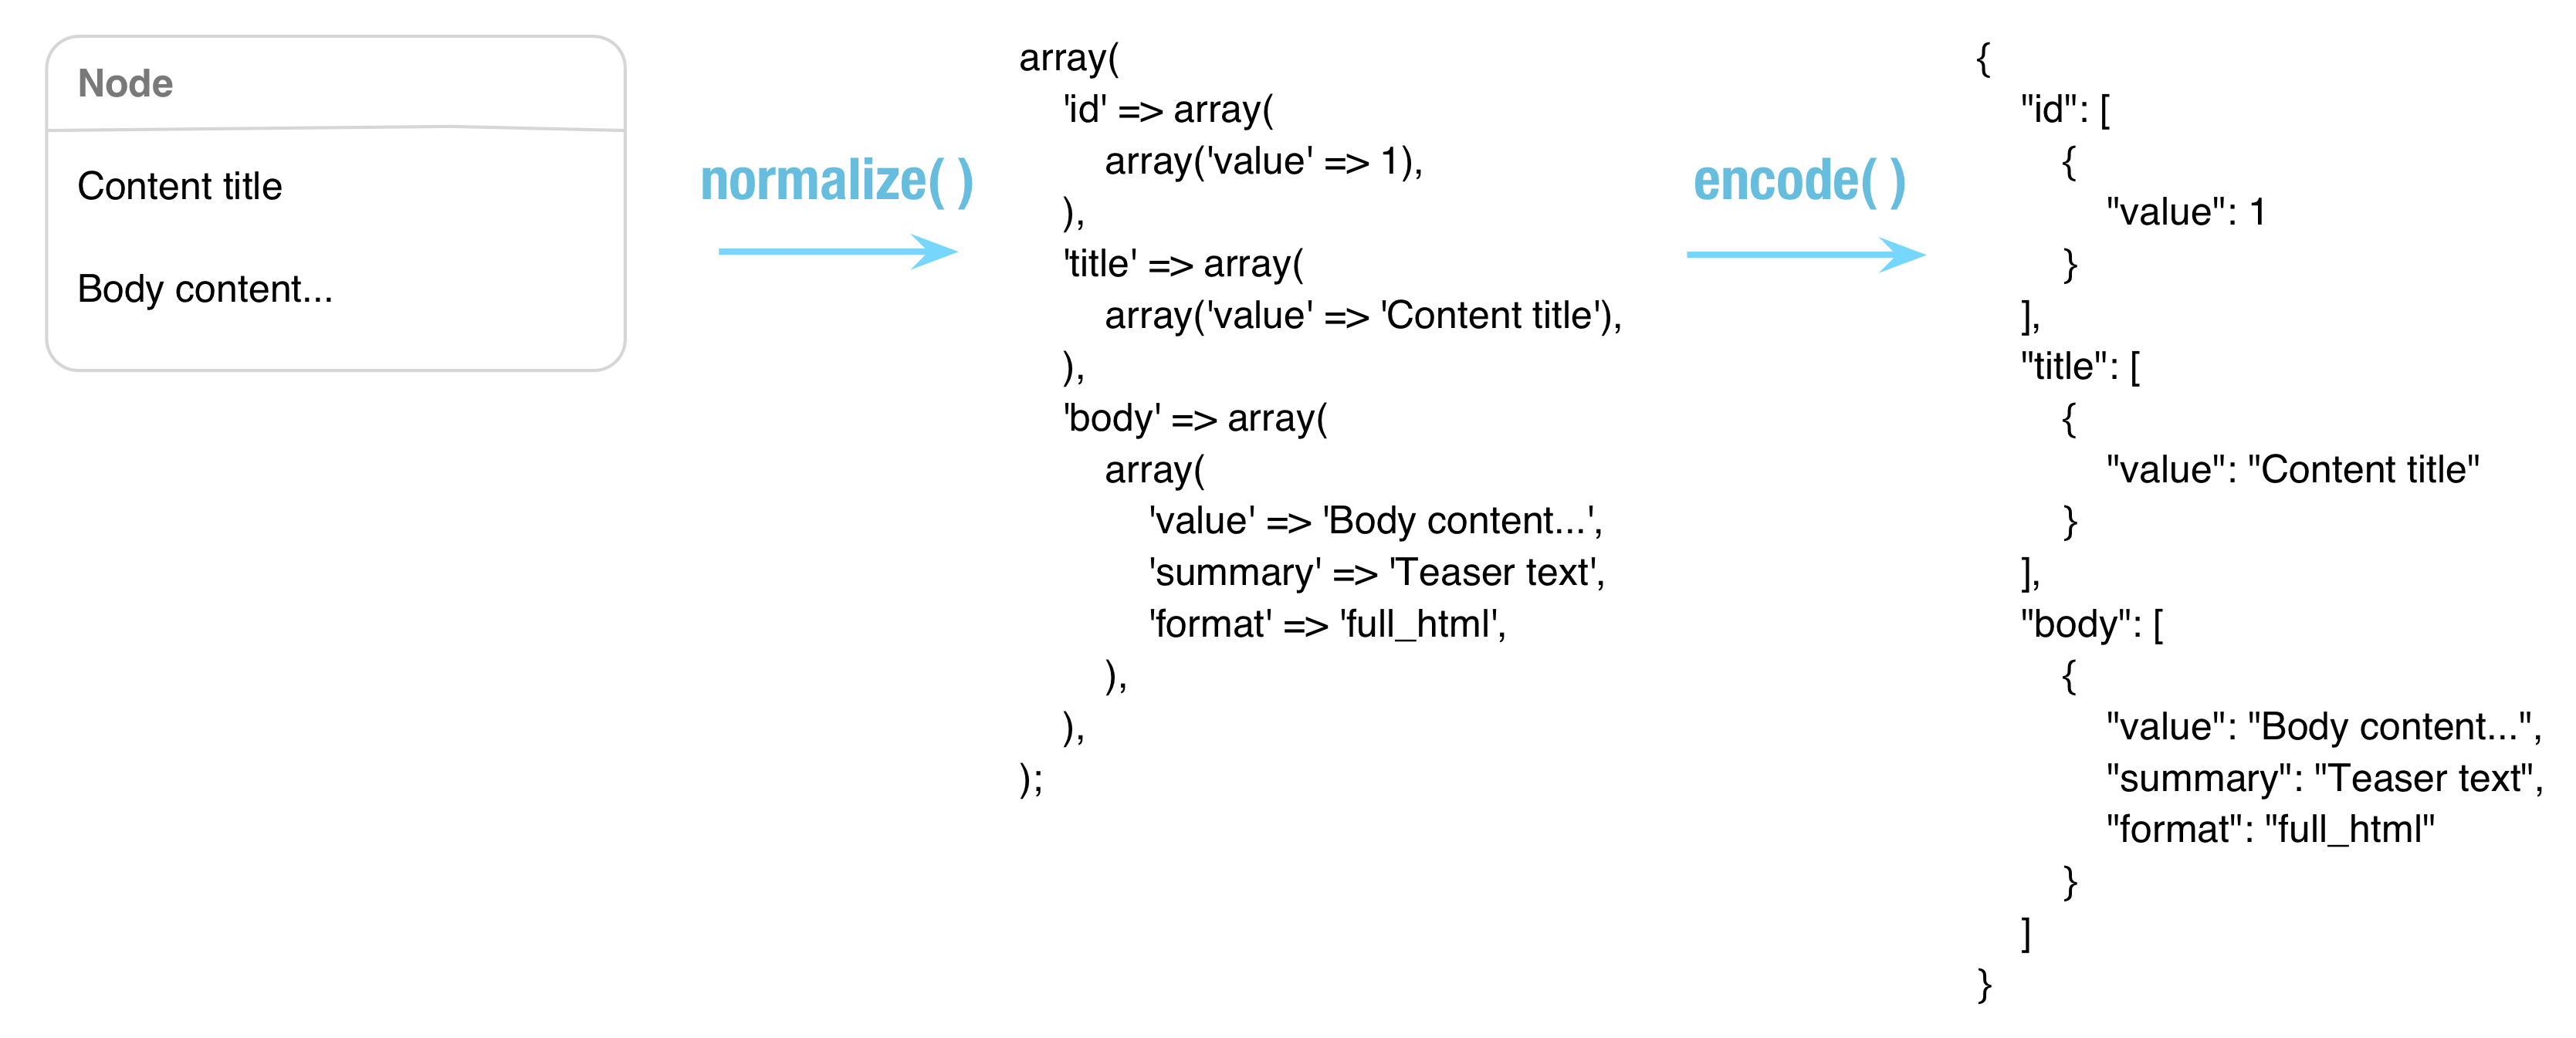 Diagram showing object transformed to array by normalize method and array transformed to string by encode